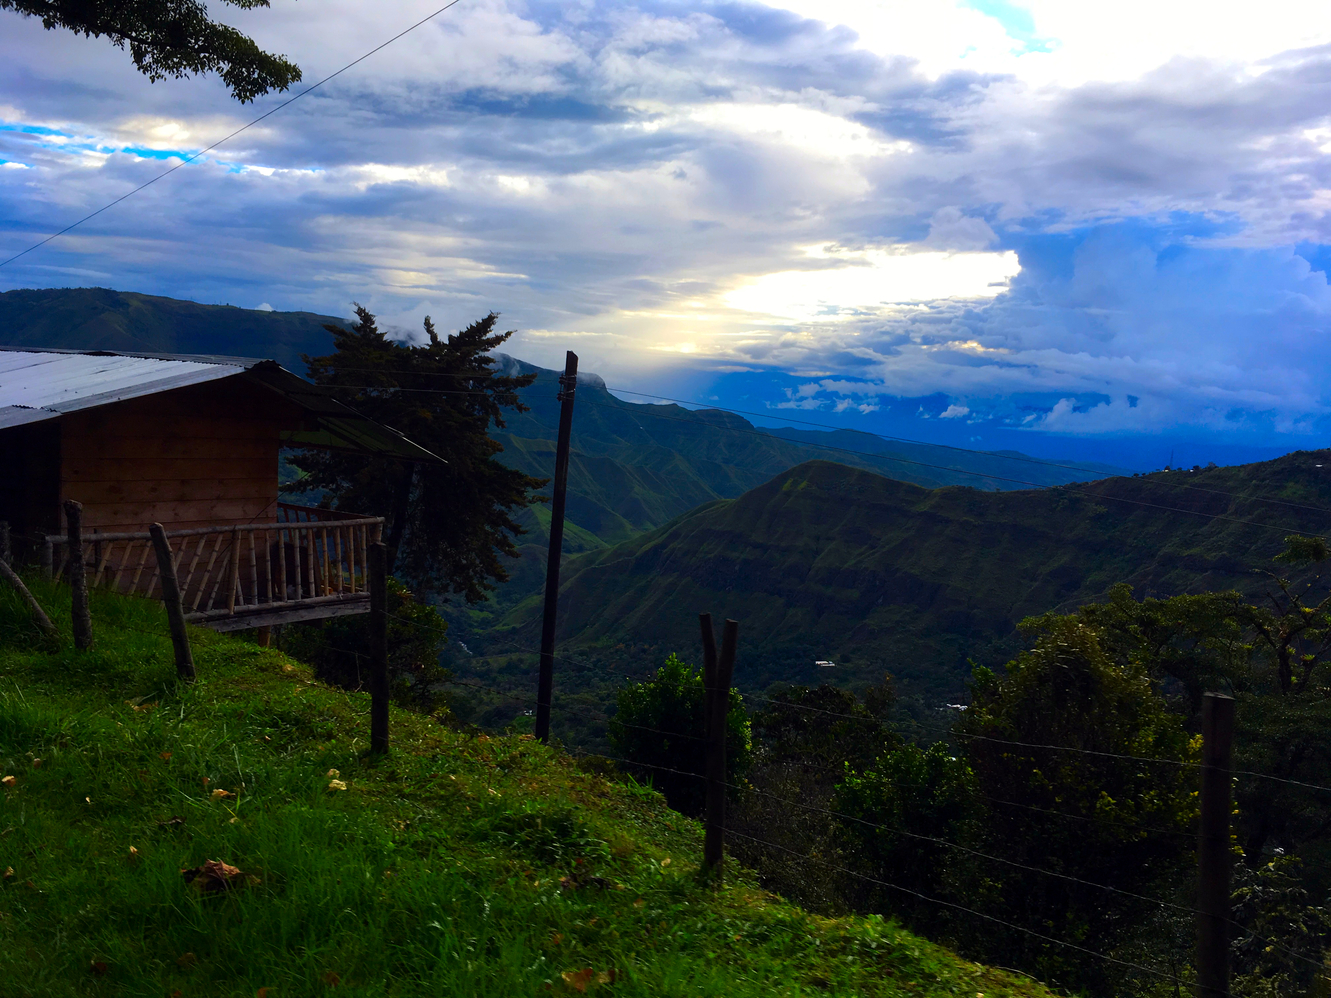 colombian overlanding down days